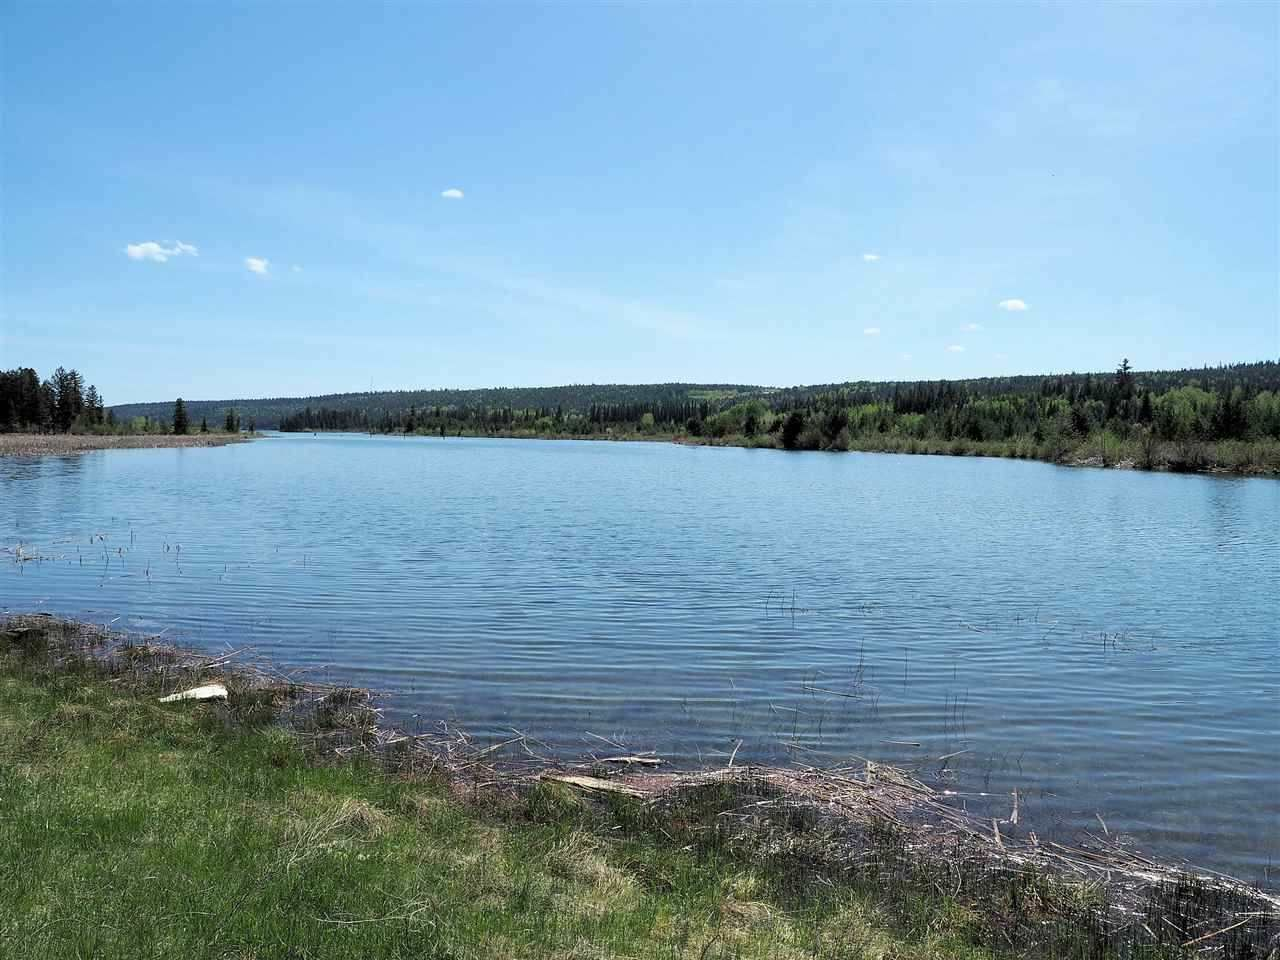 Main Photo: LOT 1 97 Highway: Lac la Hache Land for sale (100 Mile House (Zone 10))  : MLS®# R2551891